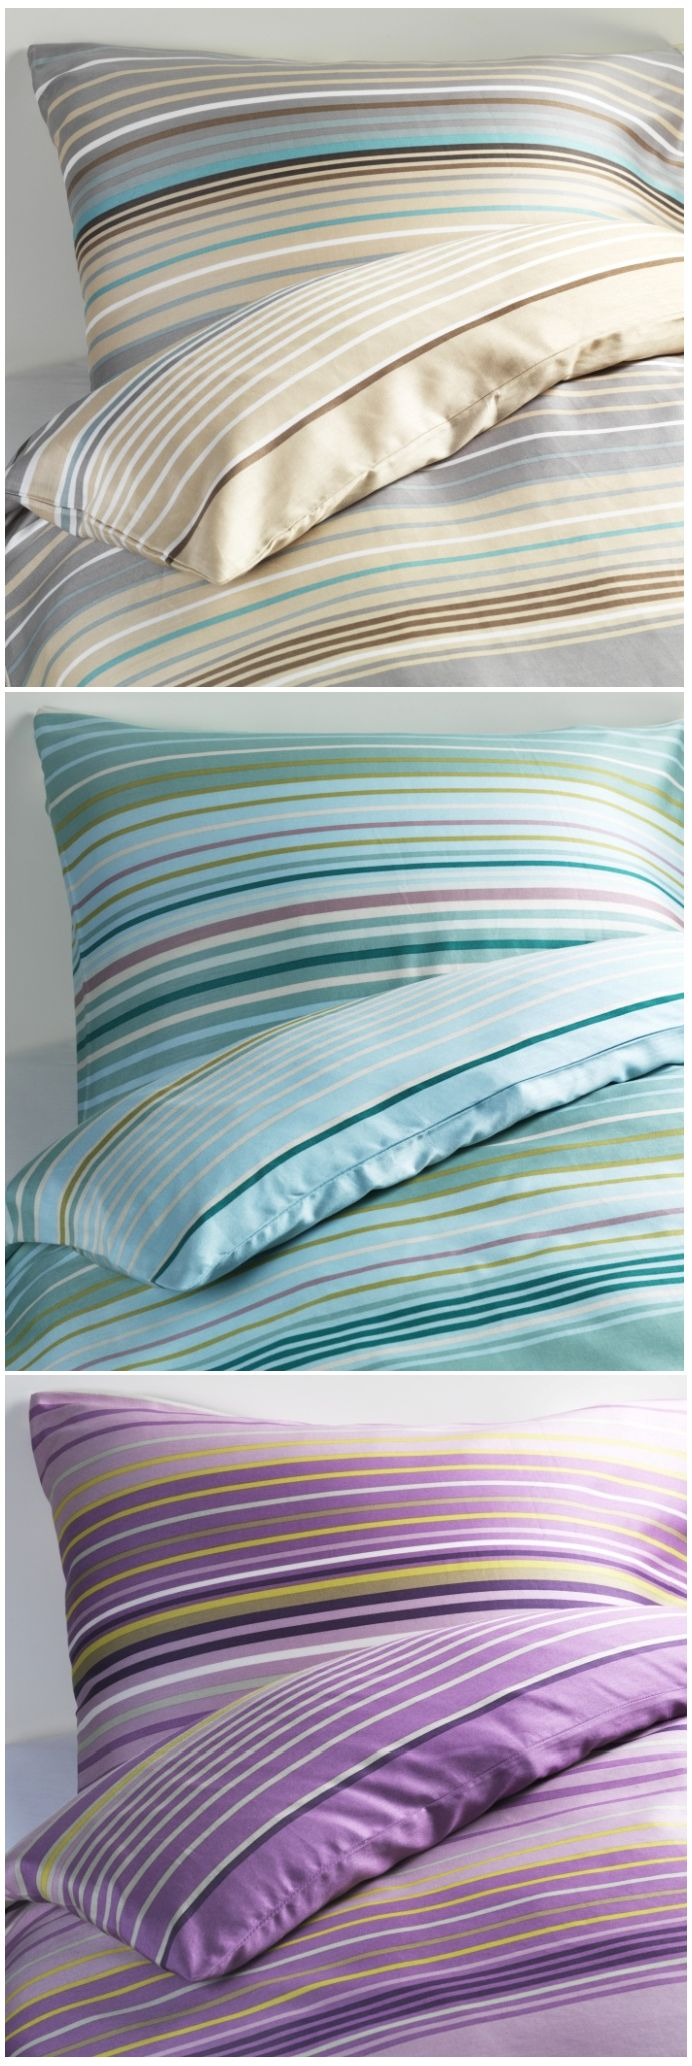 PALMLILJA - give your bedroom a soothing spa-like feeling with this soft and silky bedding.